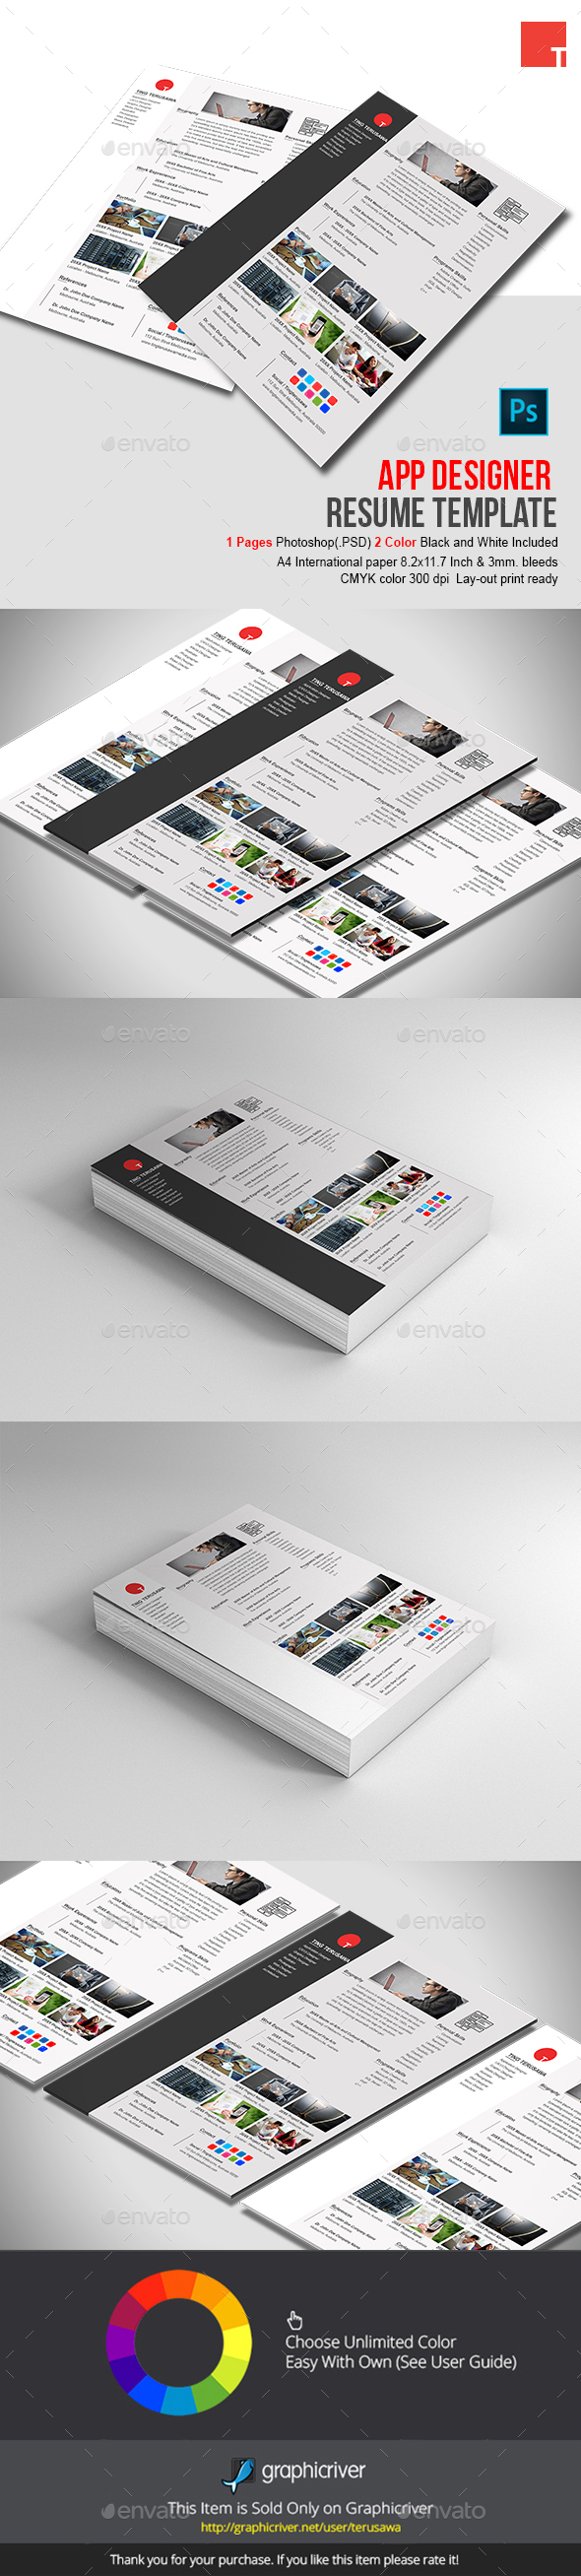 app designer resume template by terusawa graphicriver